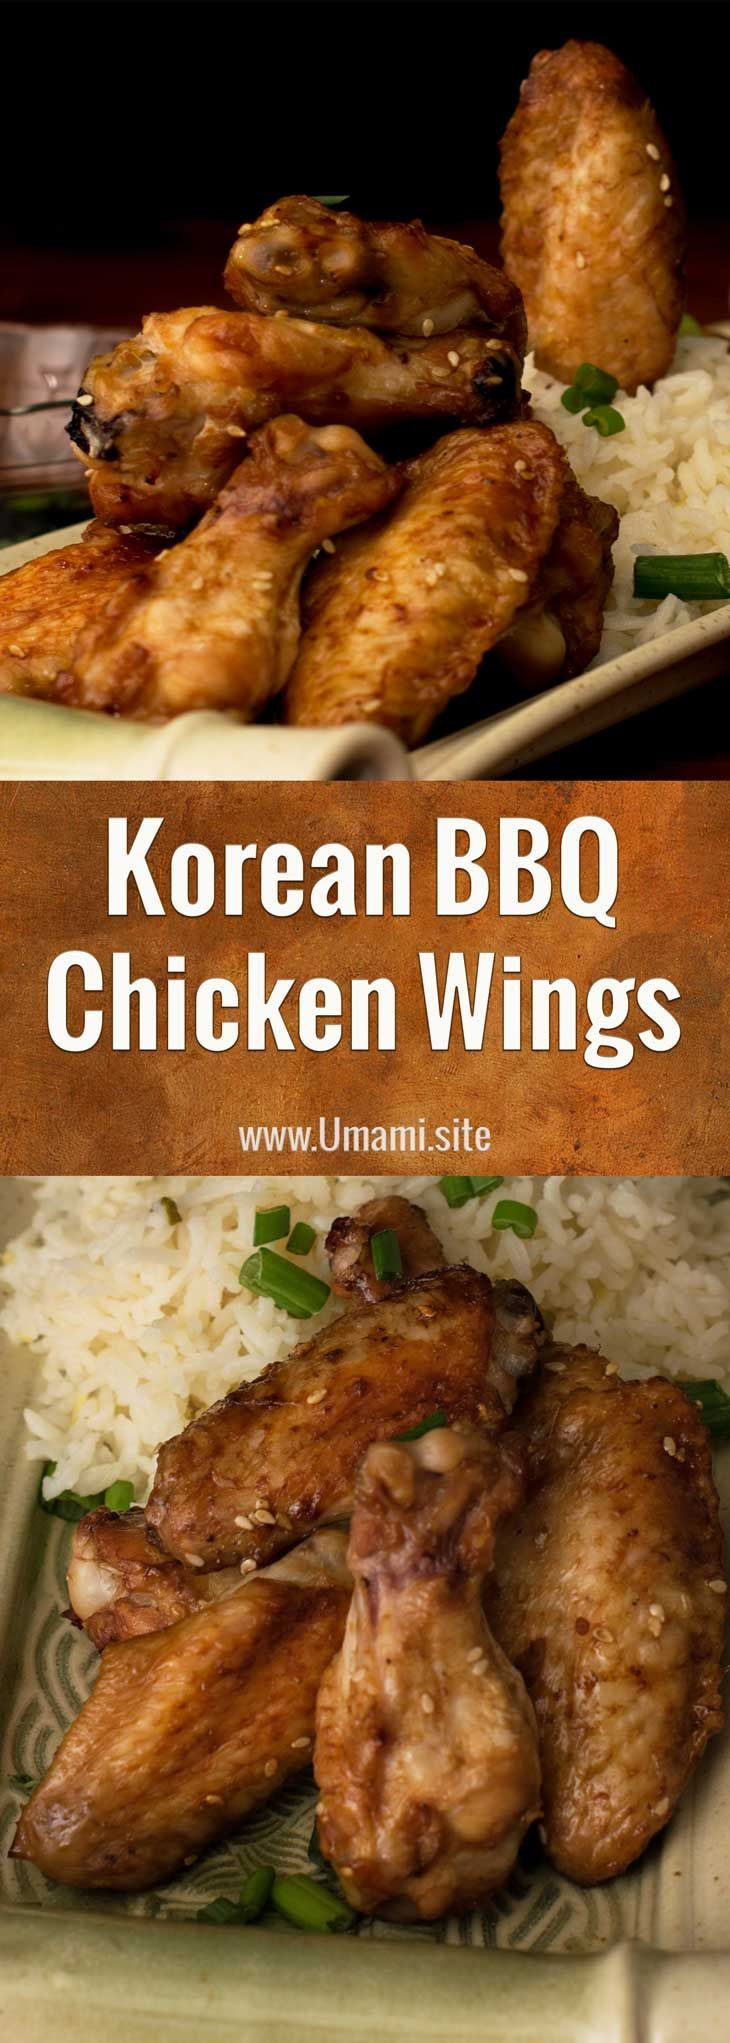 Korean BBQ Chicken Wings This wing recipe is full of and the deep flavors that make Korean BBQ so d